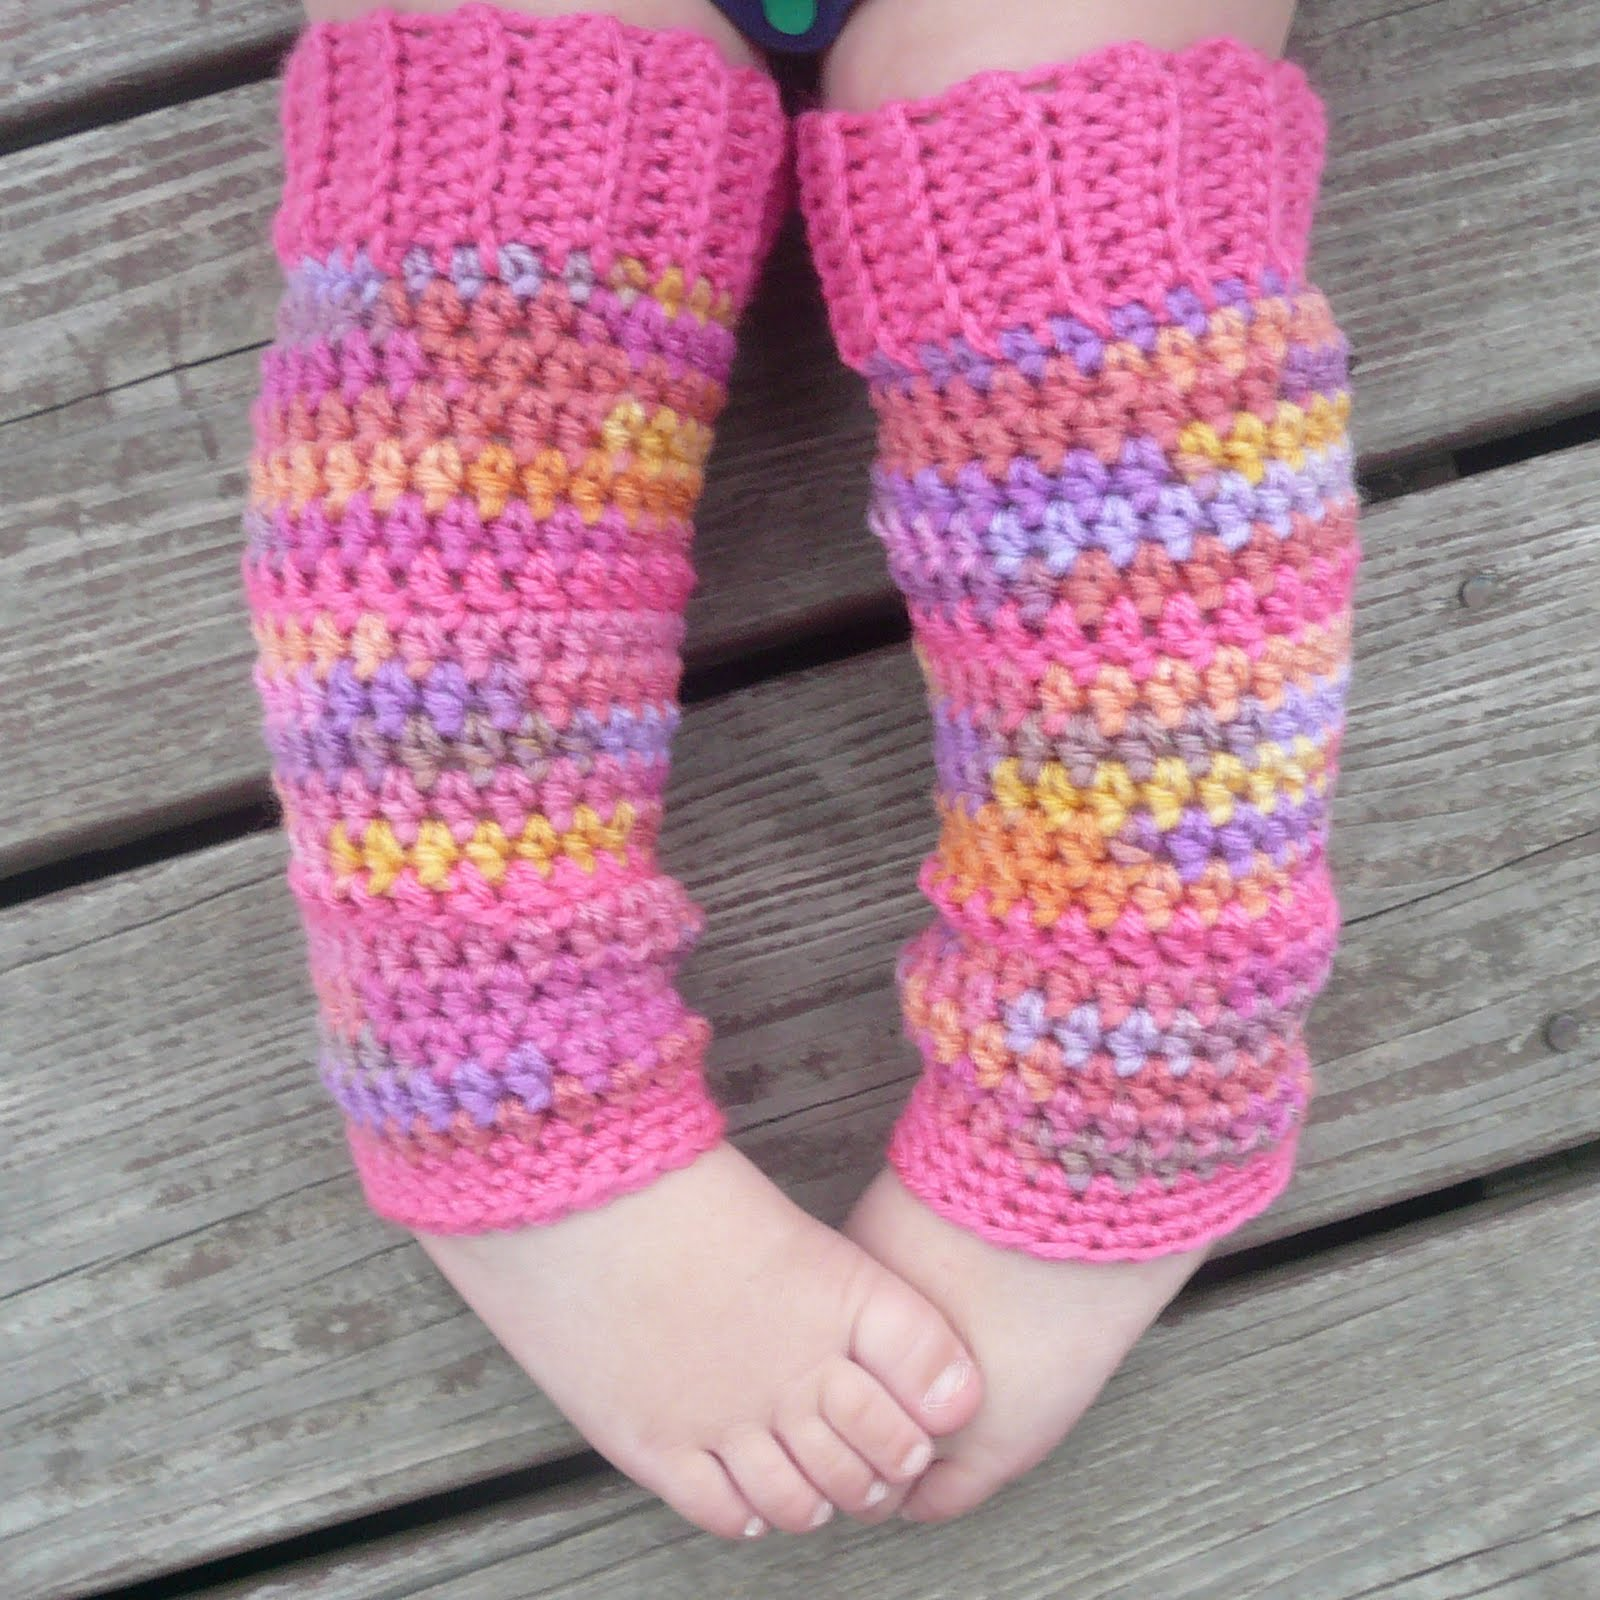 Fake Cabled Arm Warmers *Now With Semi-Pattern in Comments* - CROCHET